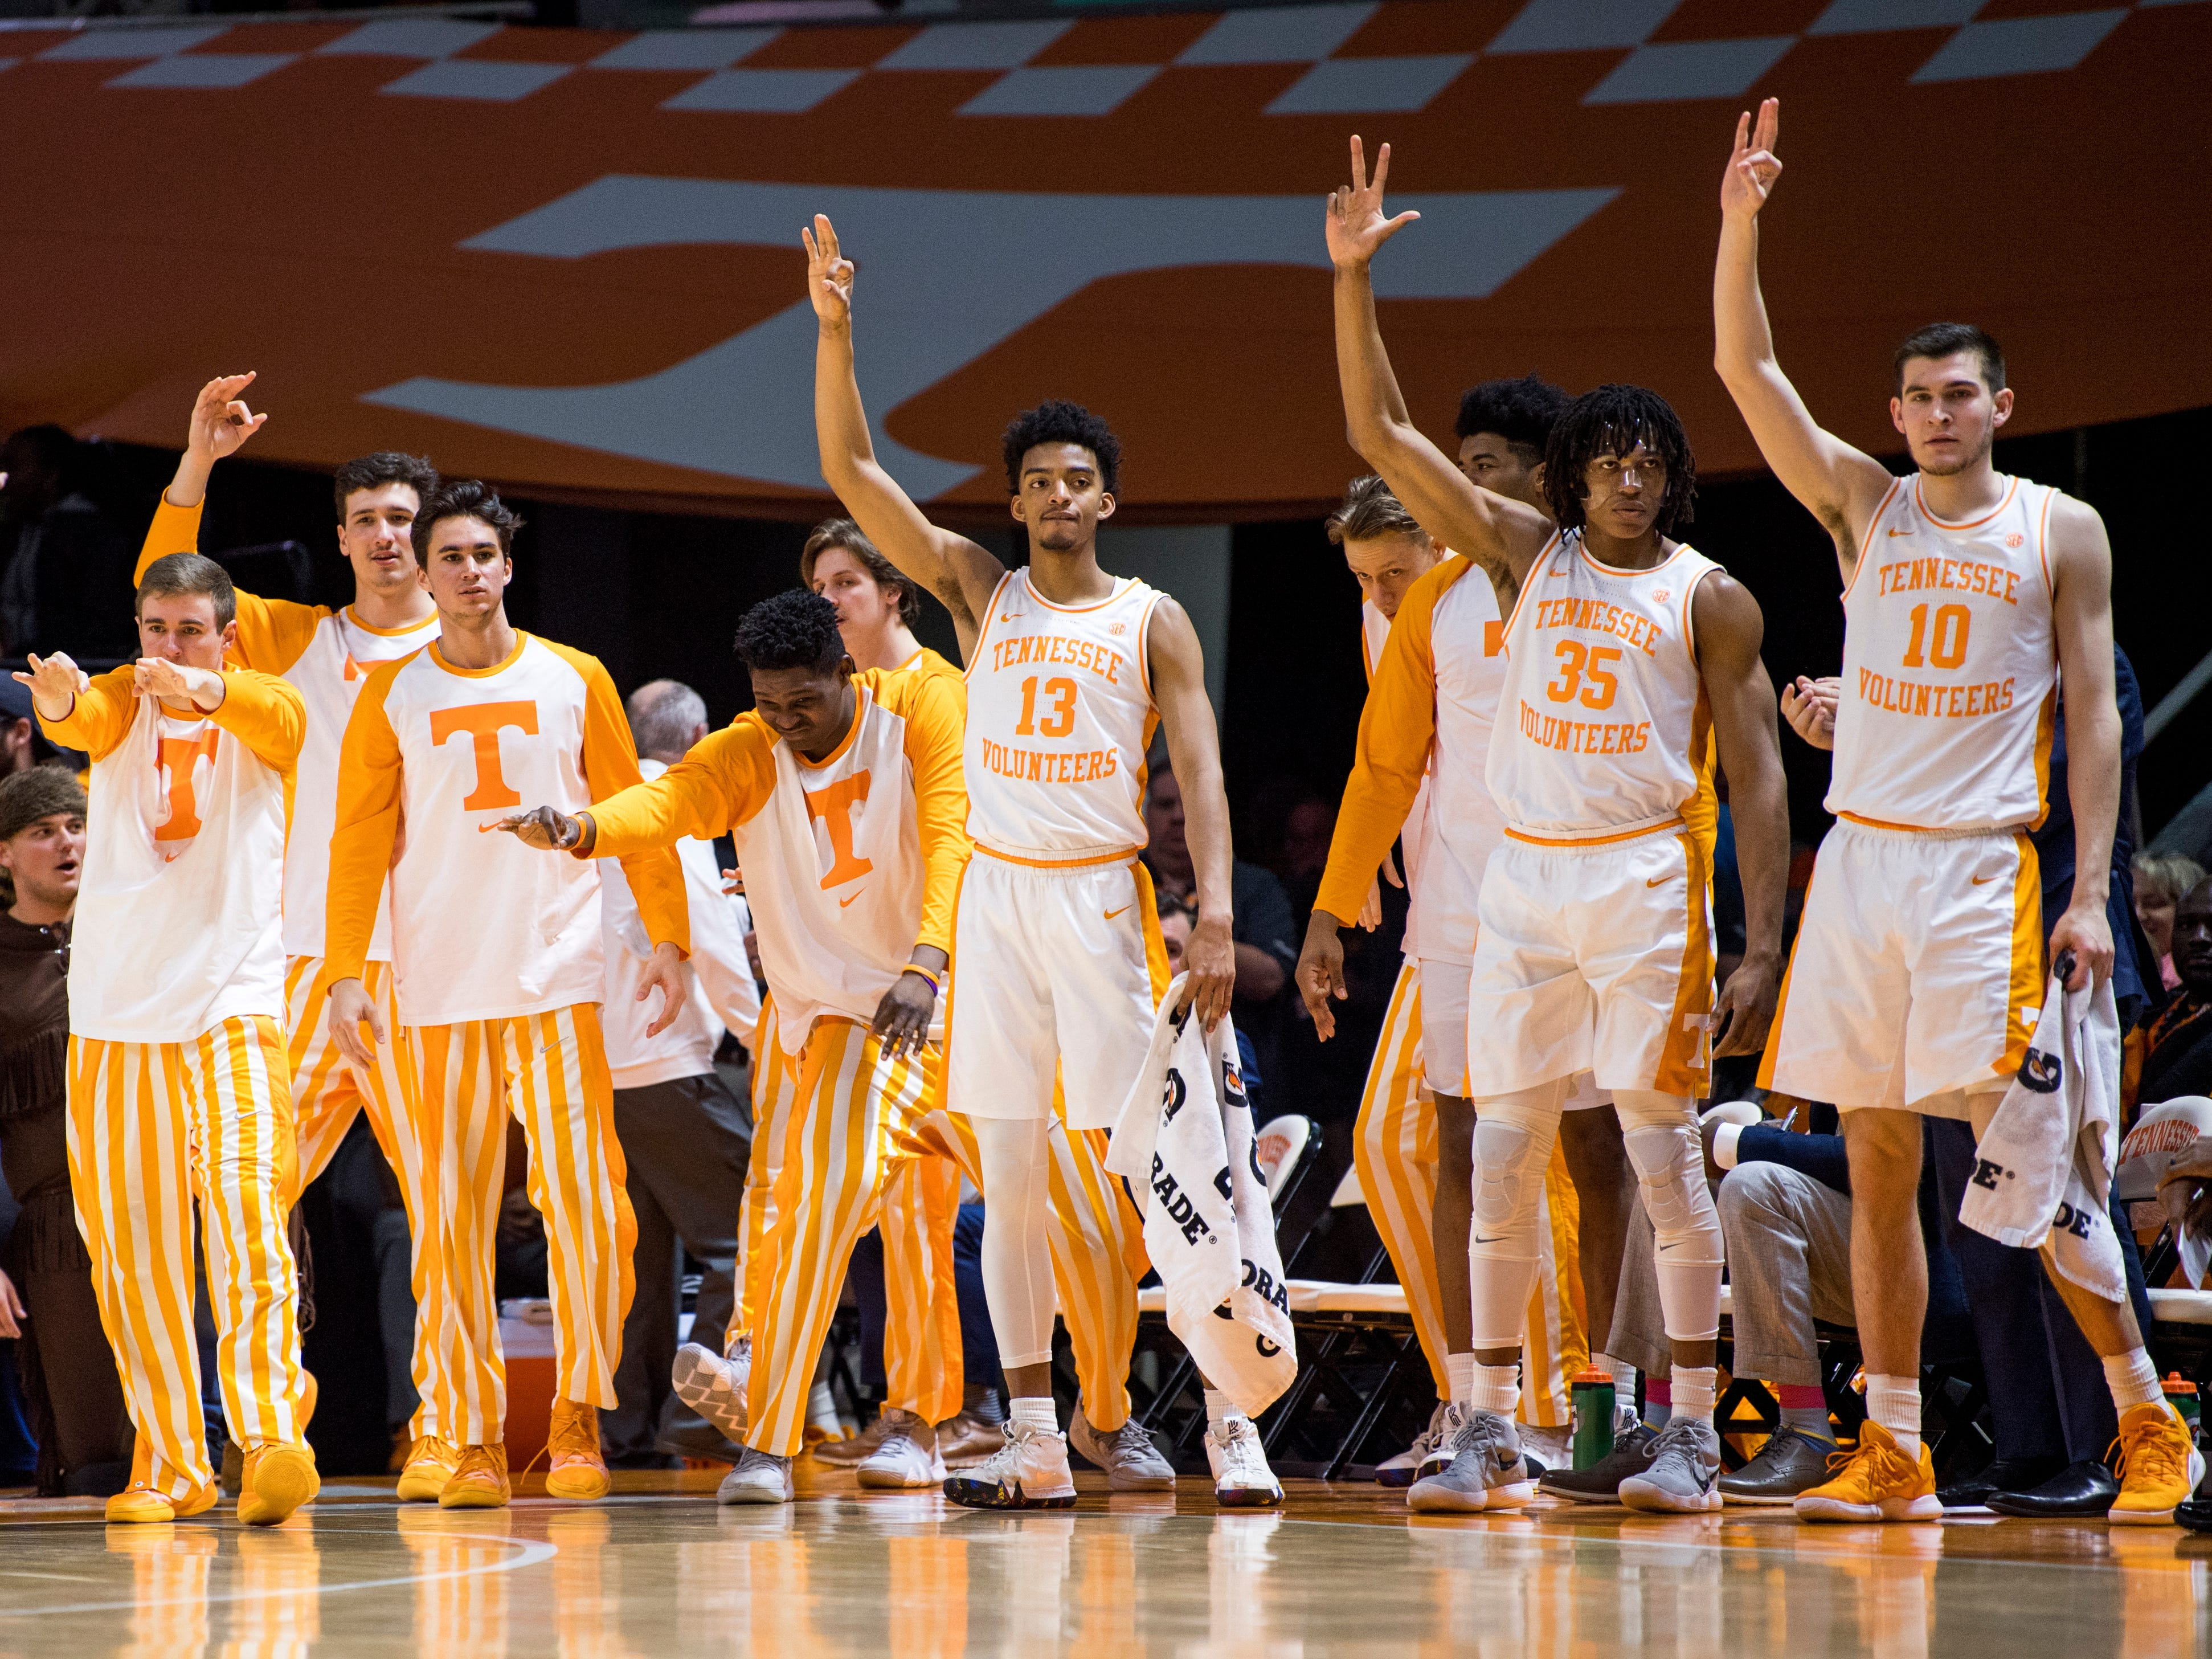 The Tennessee bench celebrates a three-pointer during Tennessee's home SEC game against South Carolina at Thompson-Boling Arena in Knoxville on Wednesday, February 13, 2019.